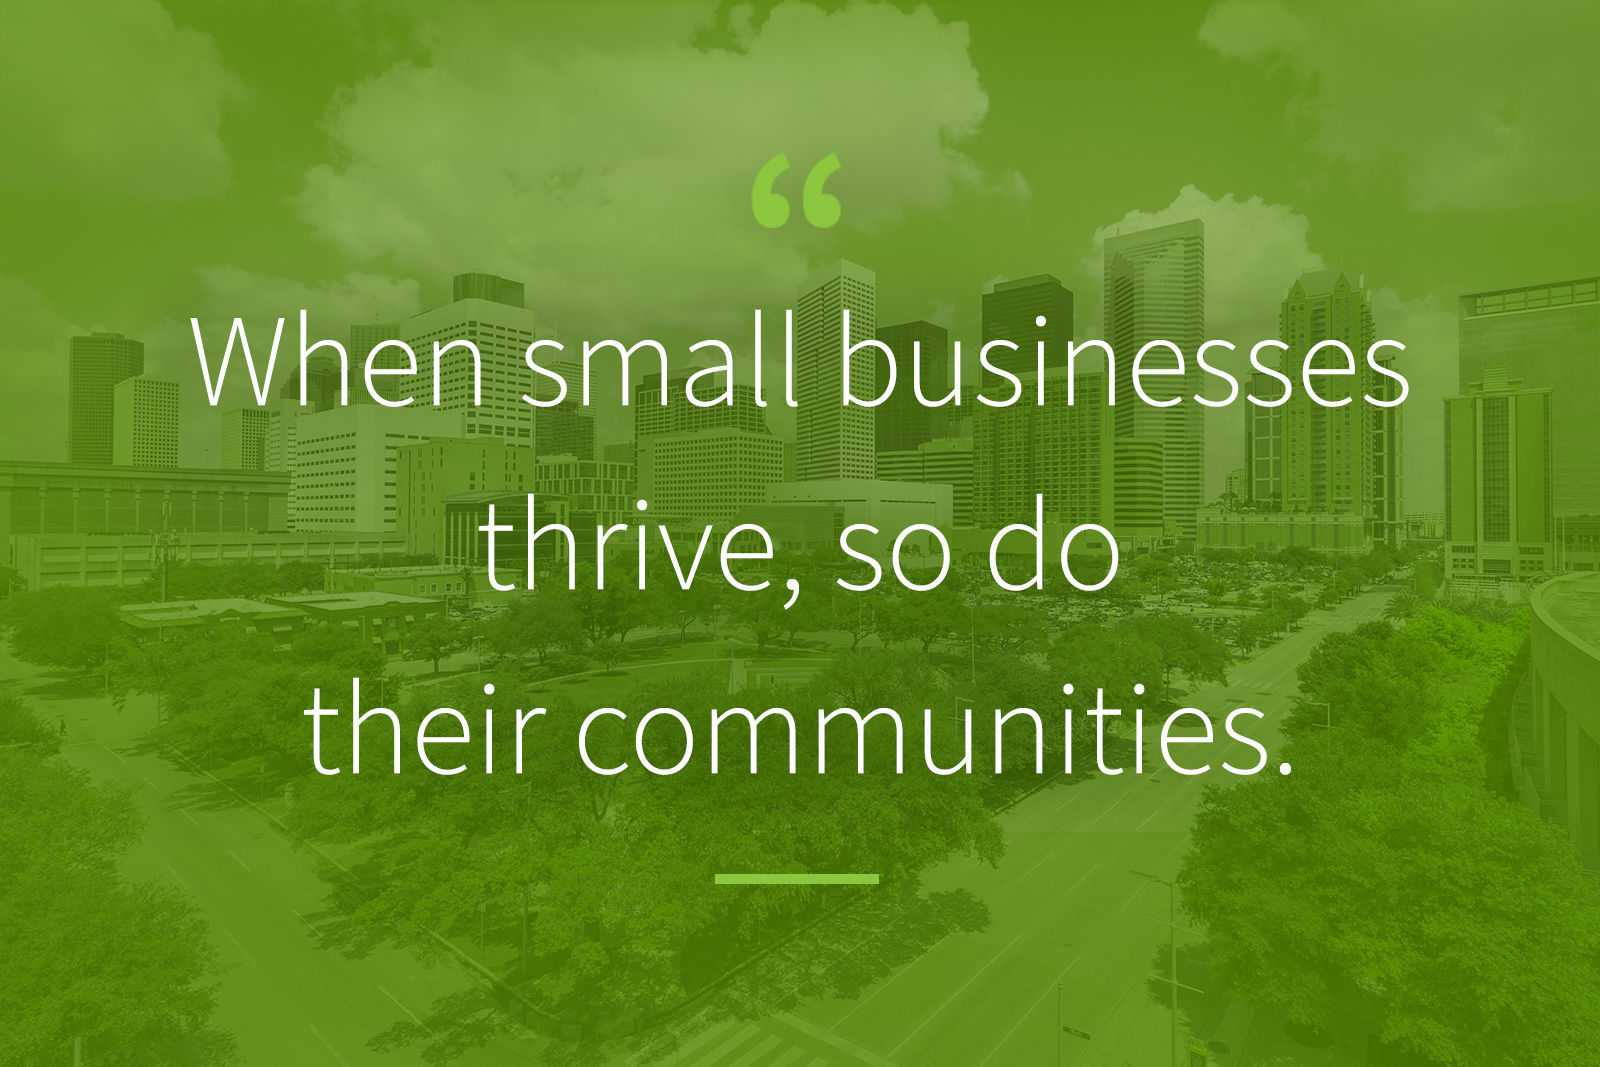 When small businesses thrive, so do their communities